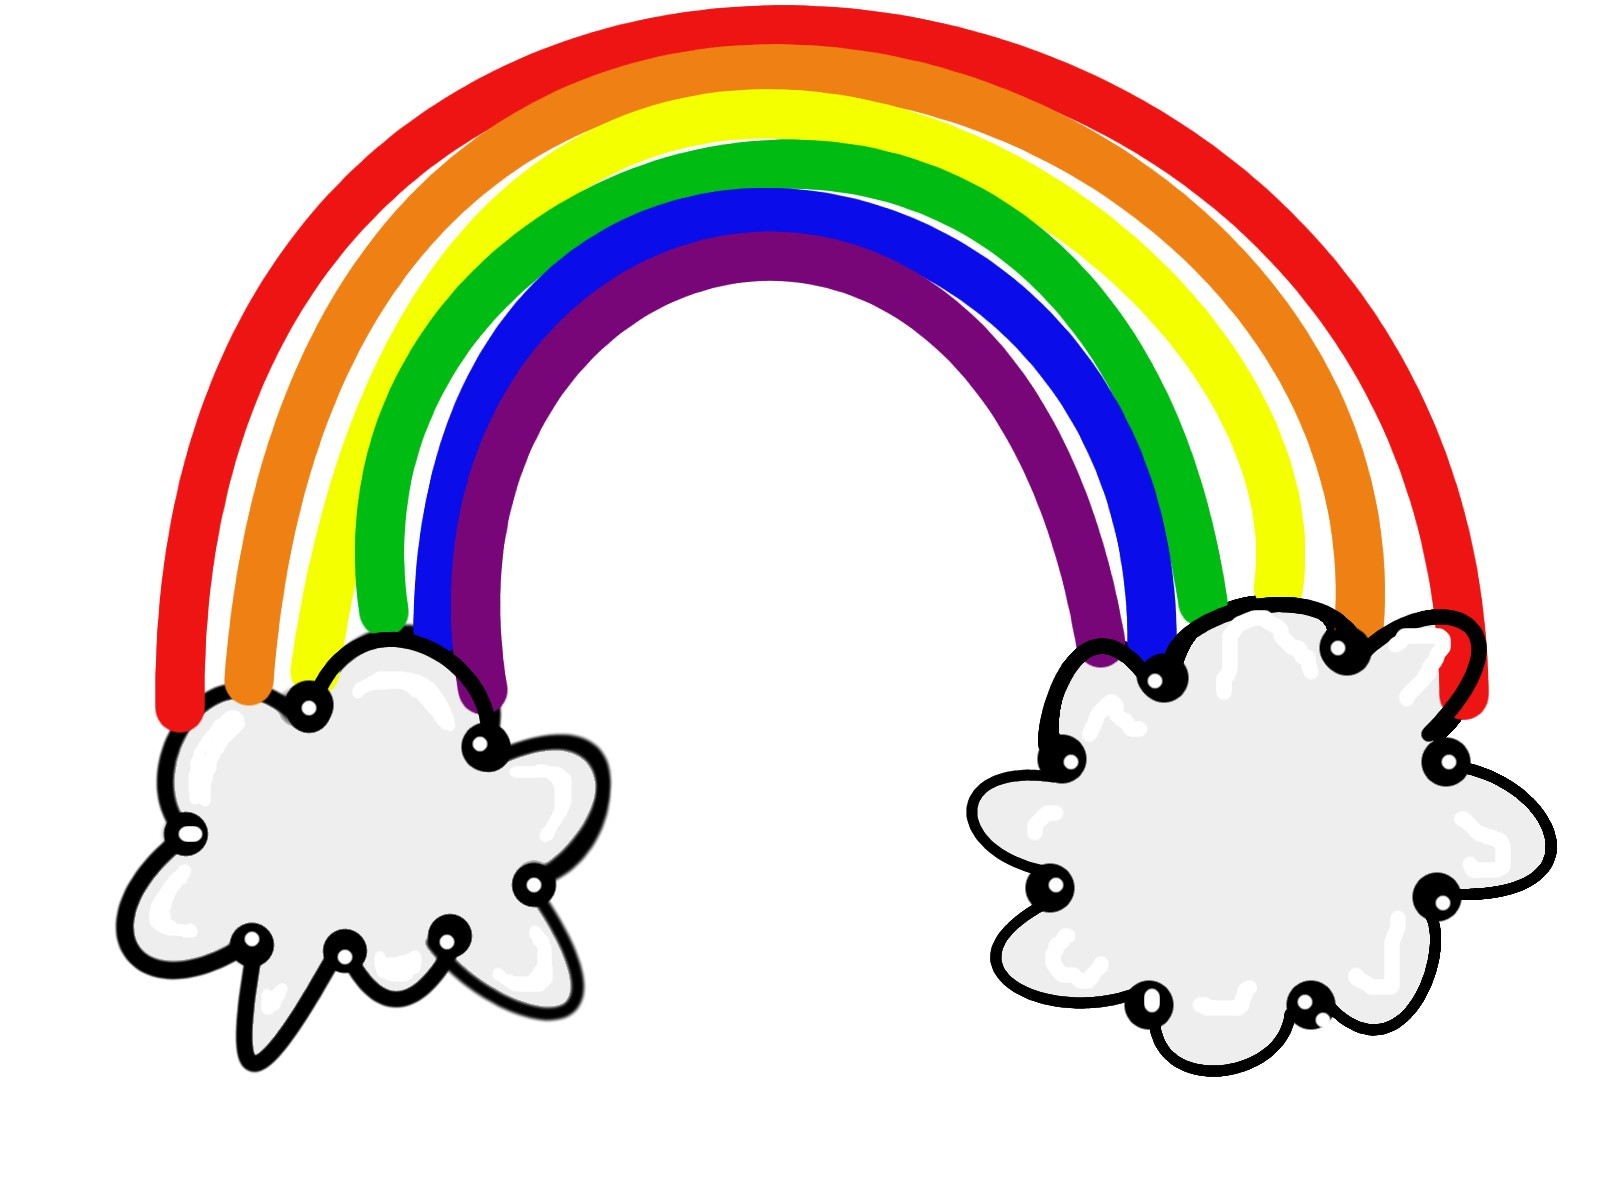 rainbow clipart border 20 free Cliparts   Download images ...